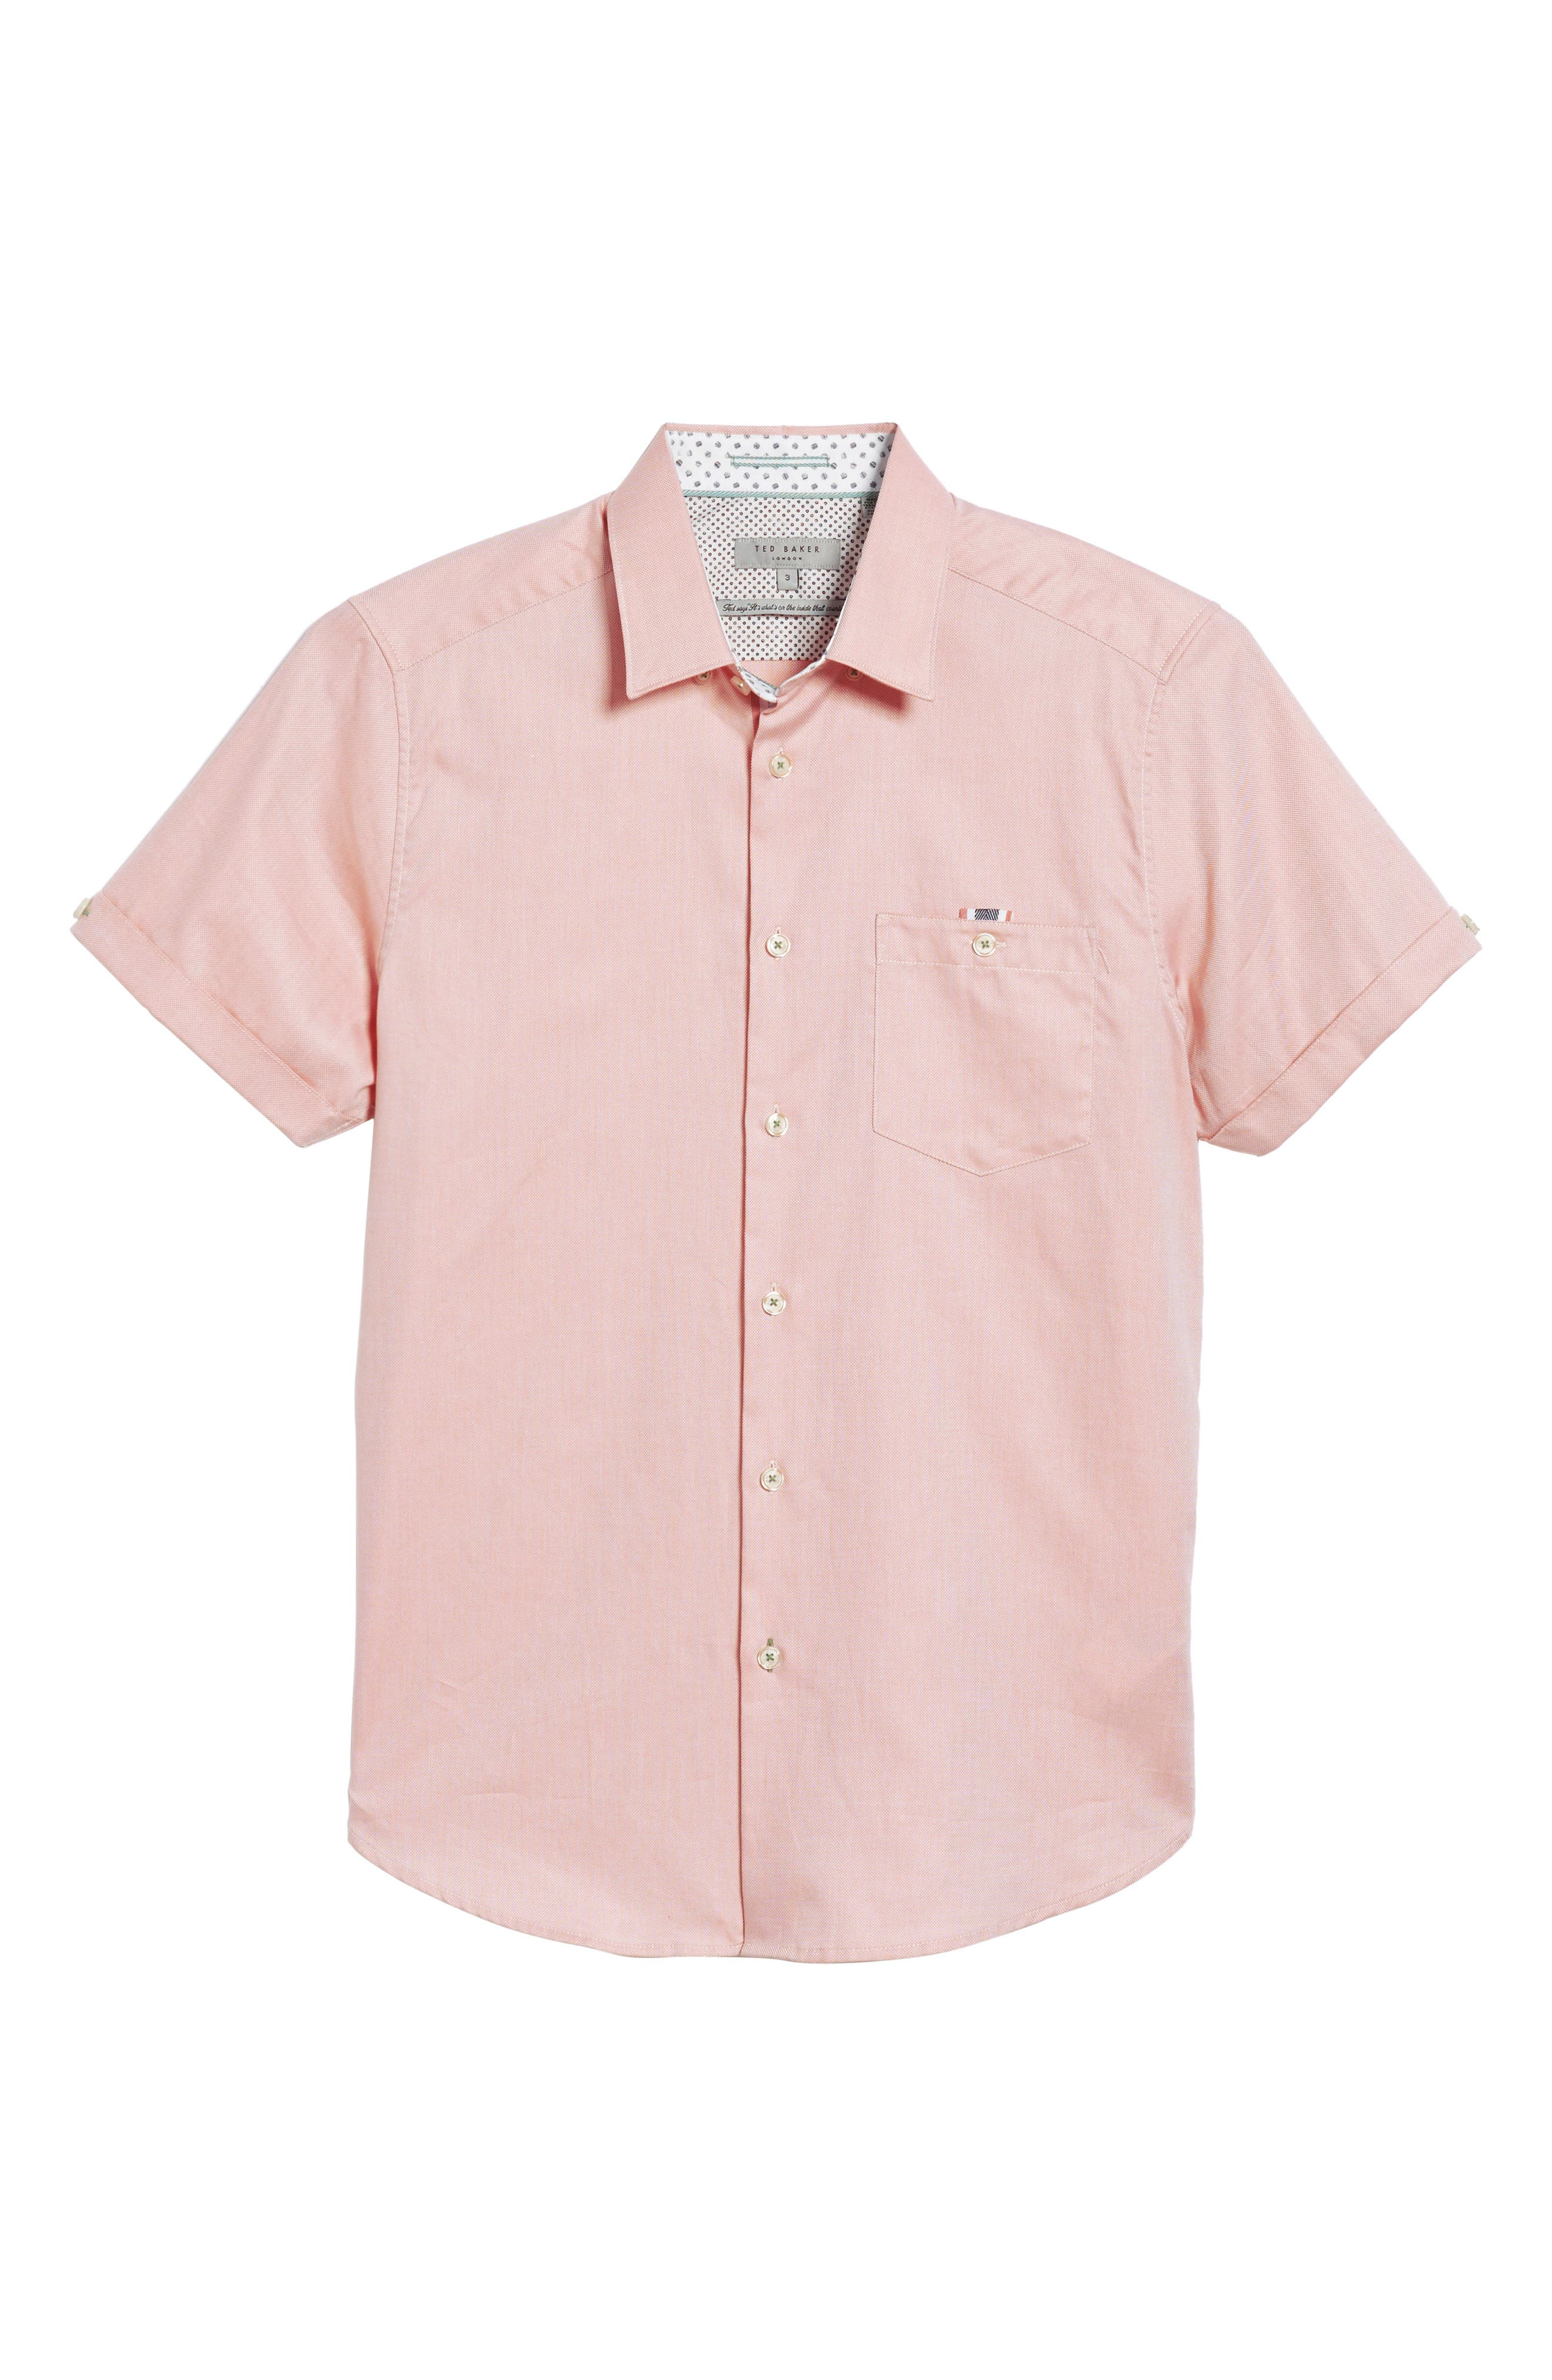 Wallo Trim Fit Short Sleeve Sport Shirt,                             Alternate thumbnail 6, color,                             Pink